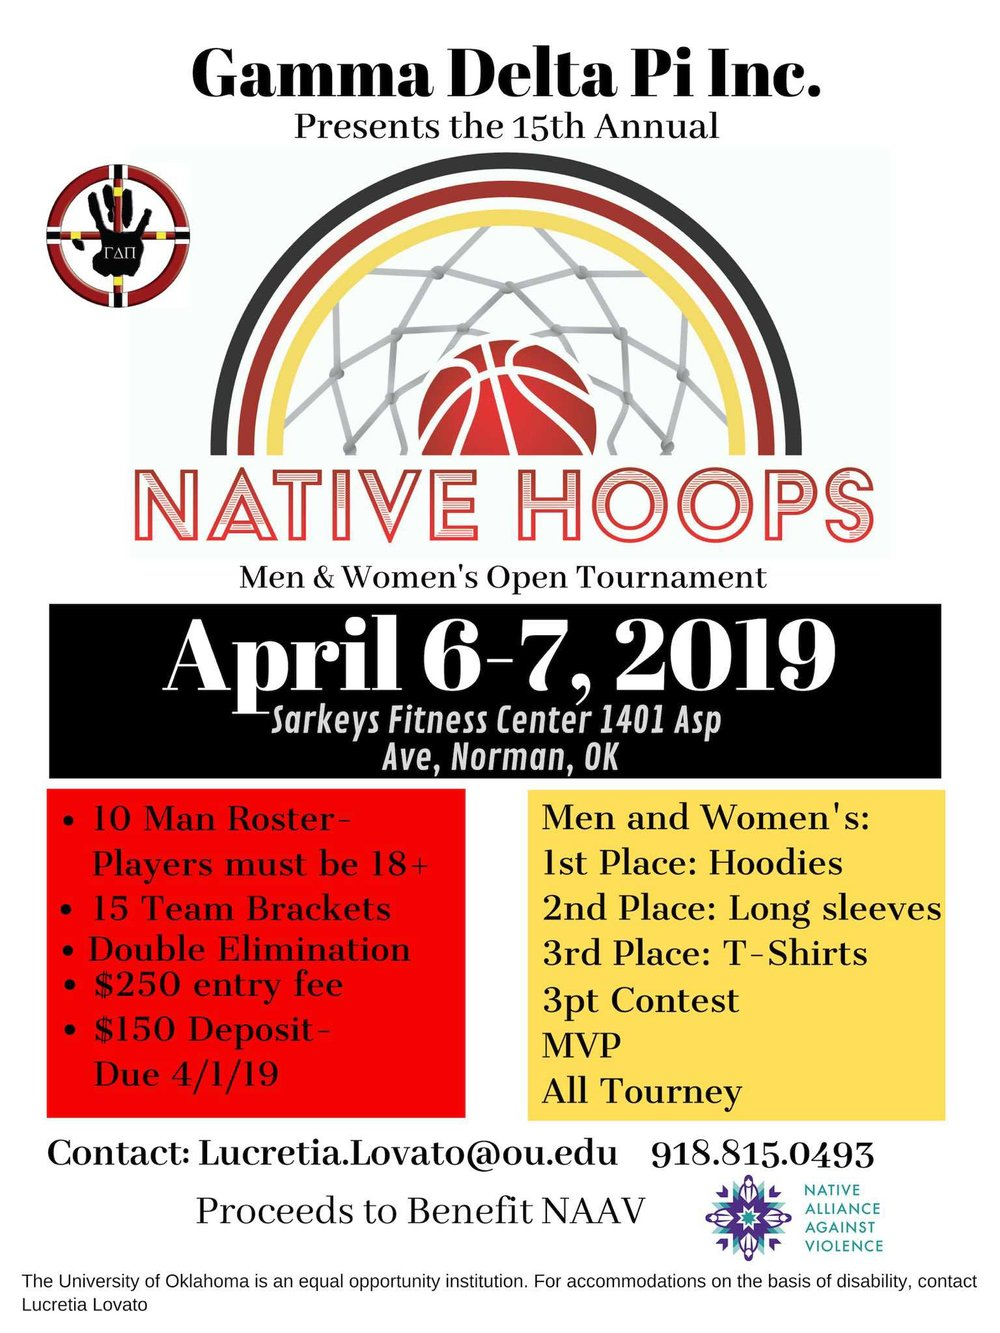 GDP Native Hoops 19.jpg